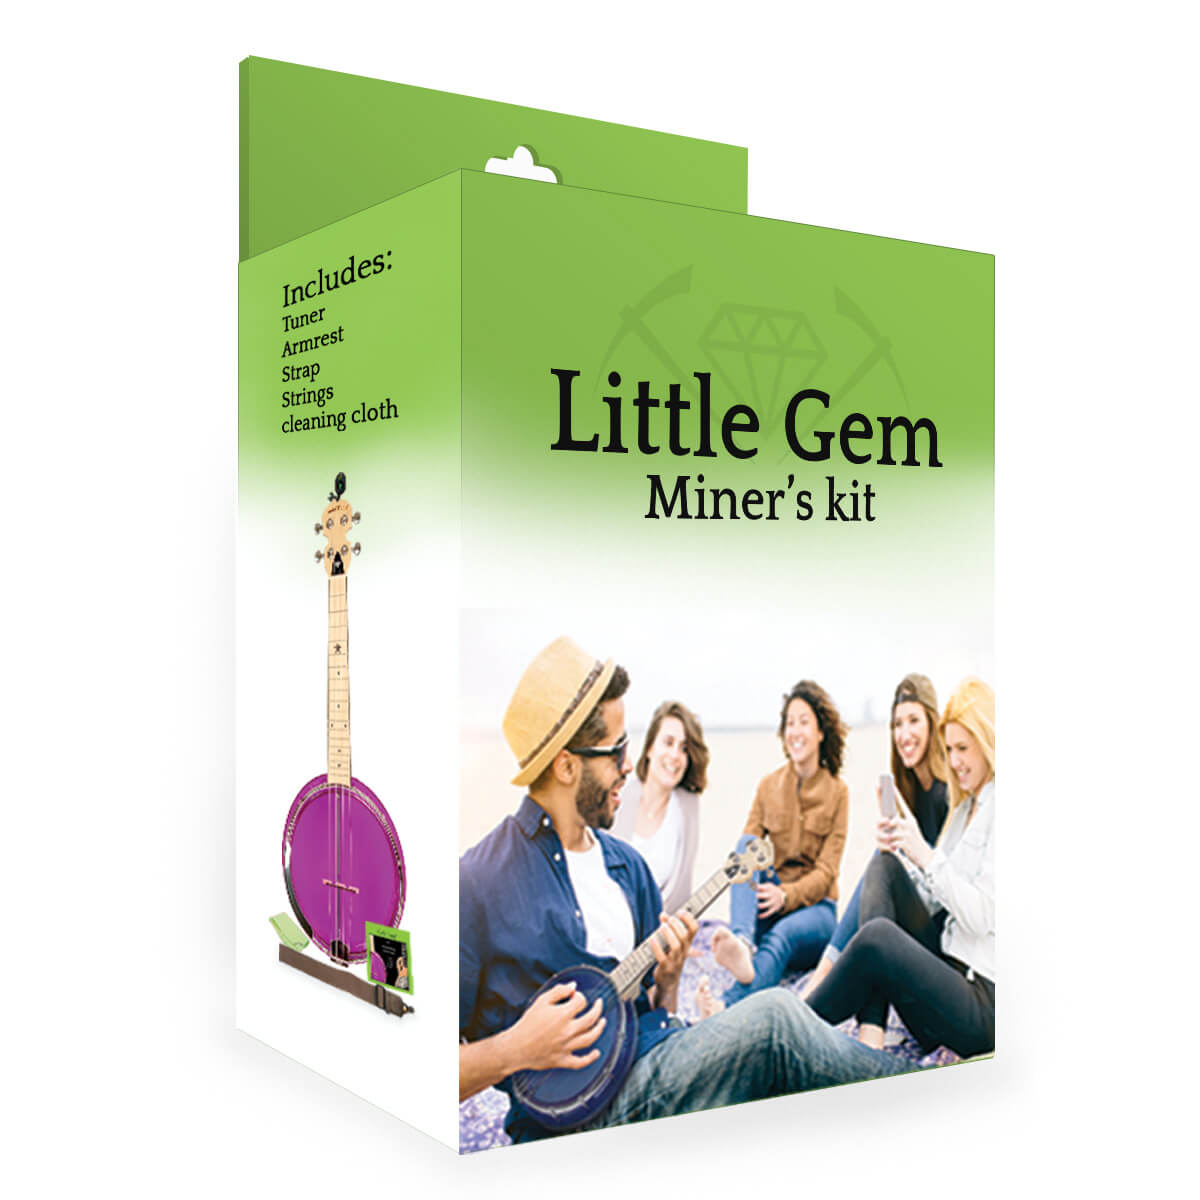 Little Gem Miner's Kit